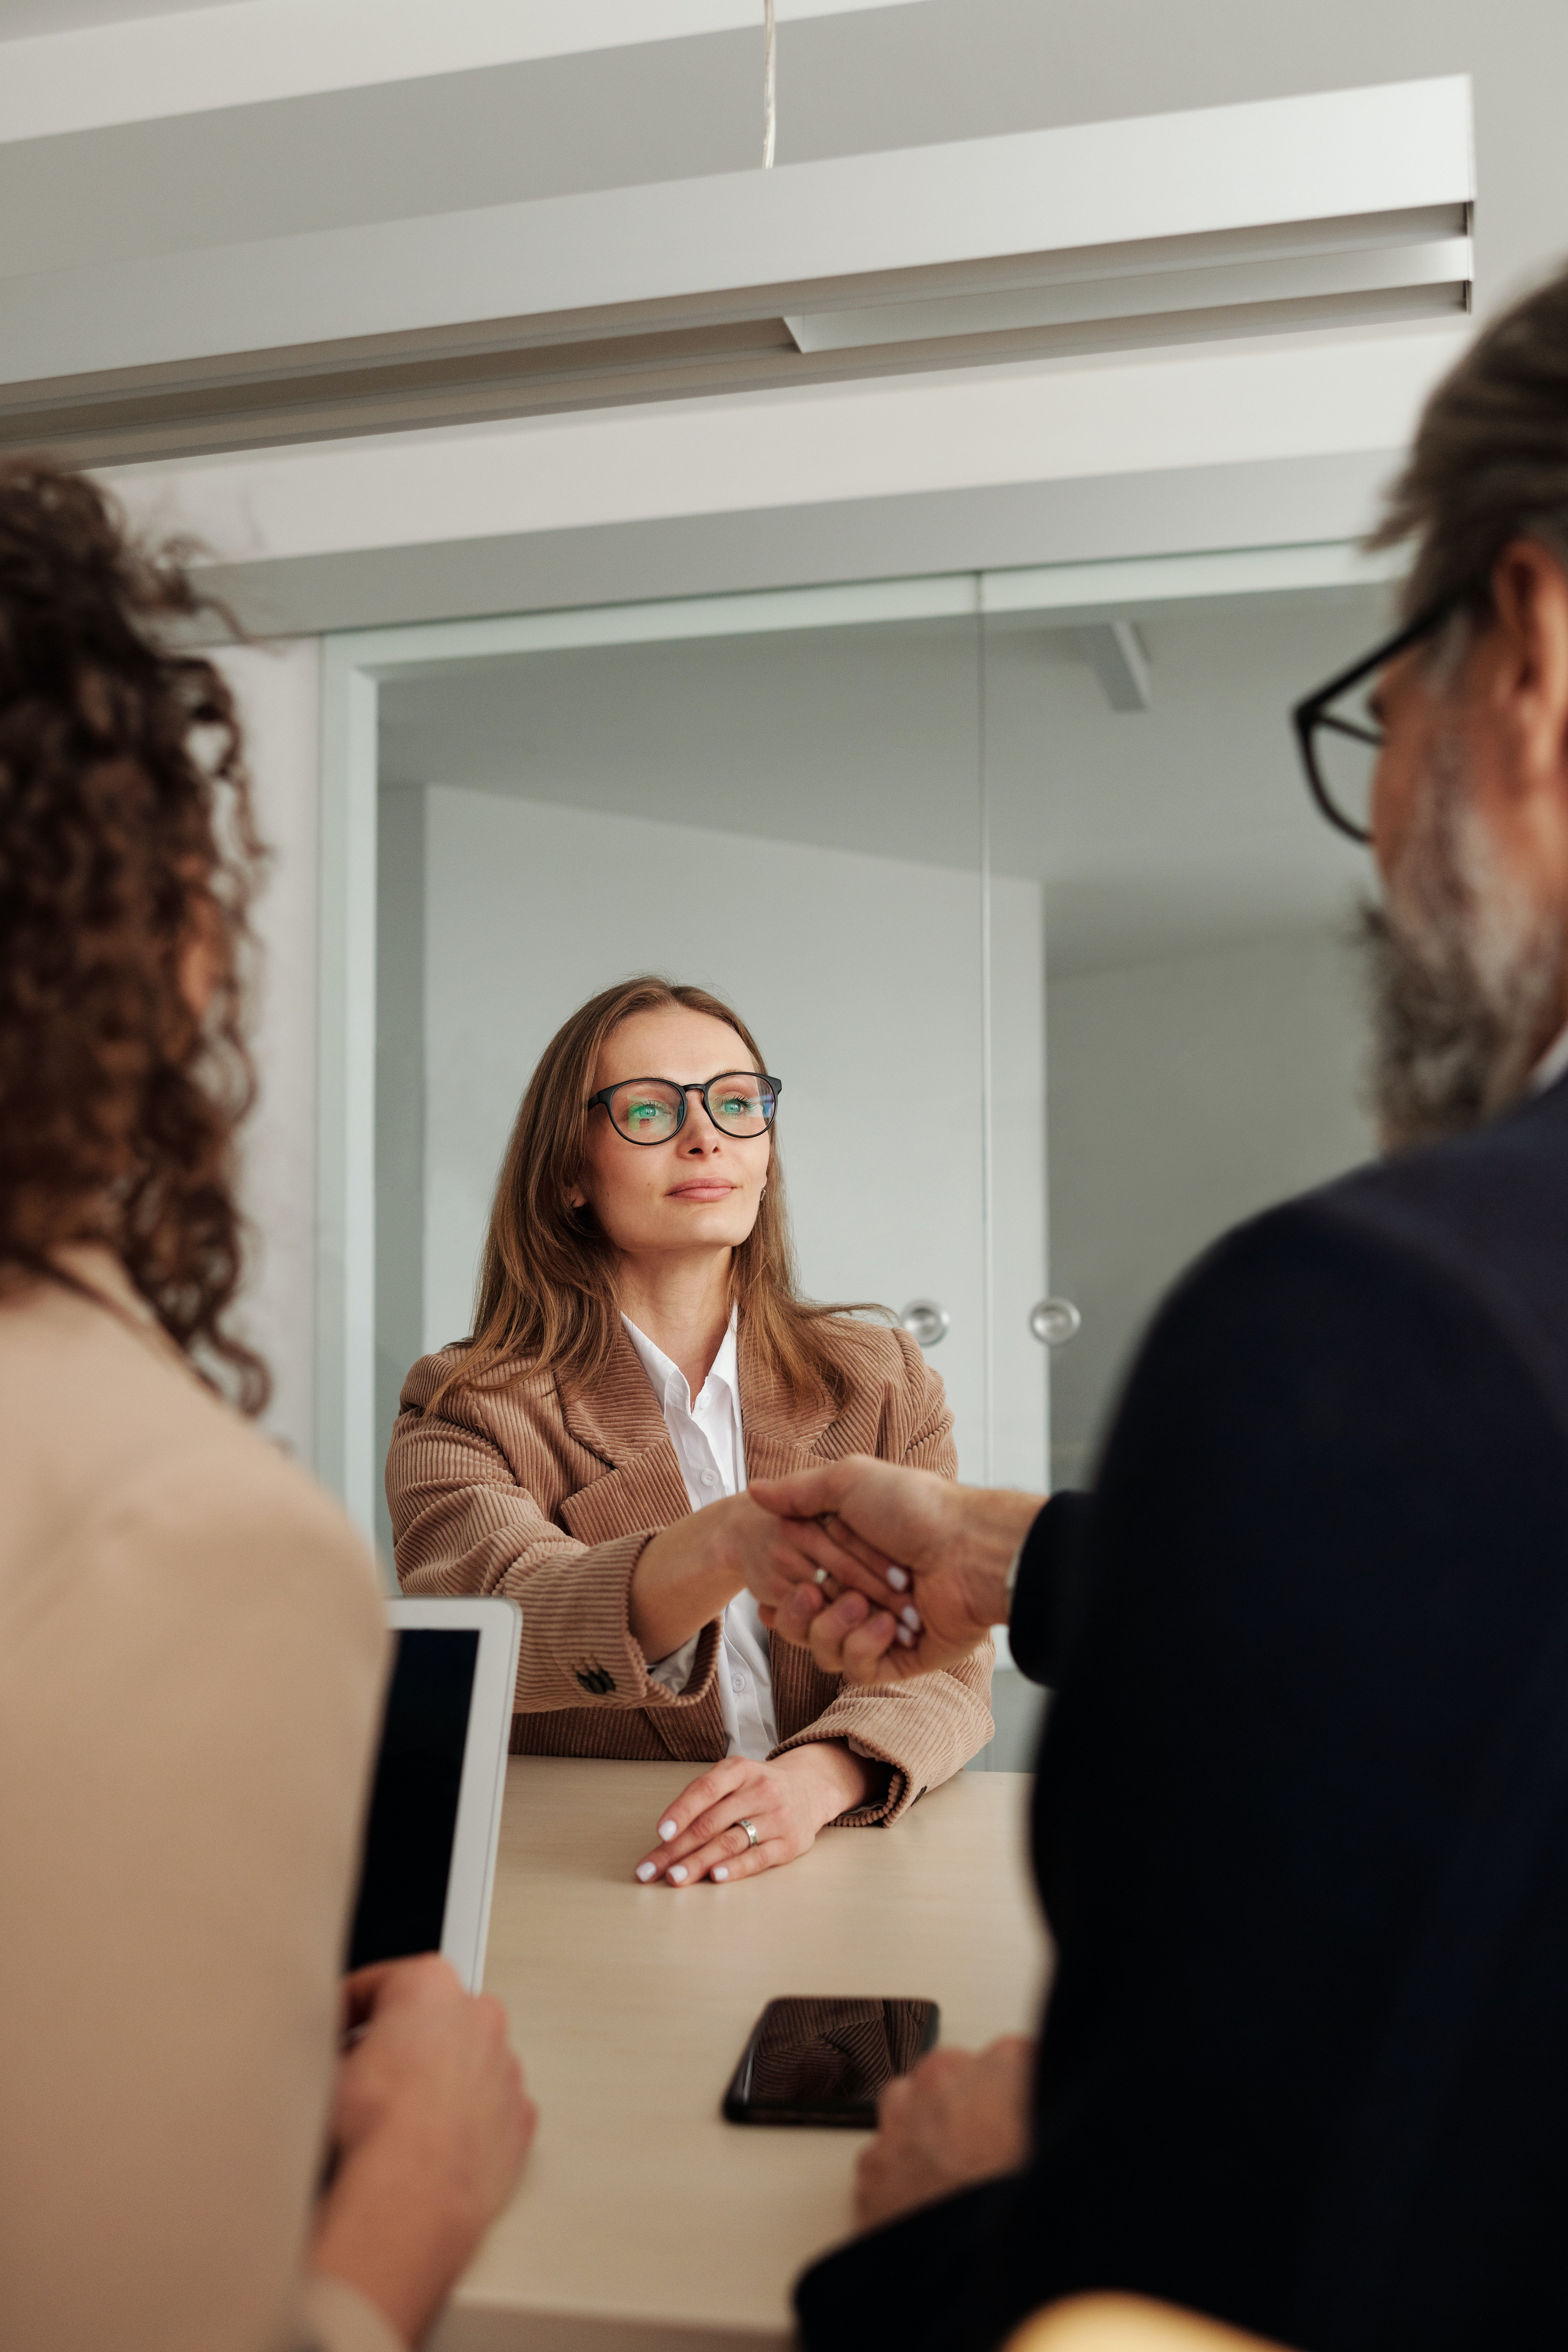 A woman in a suit and glasses shaking hands with a woman across her   Source: Pexels